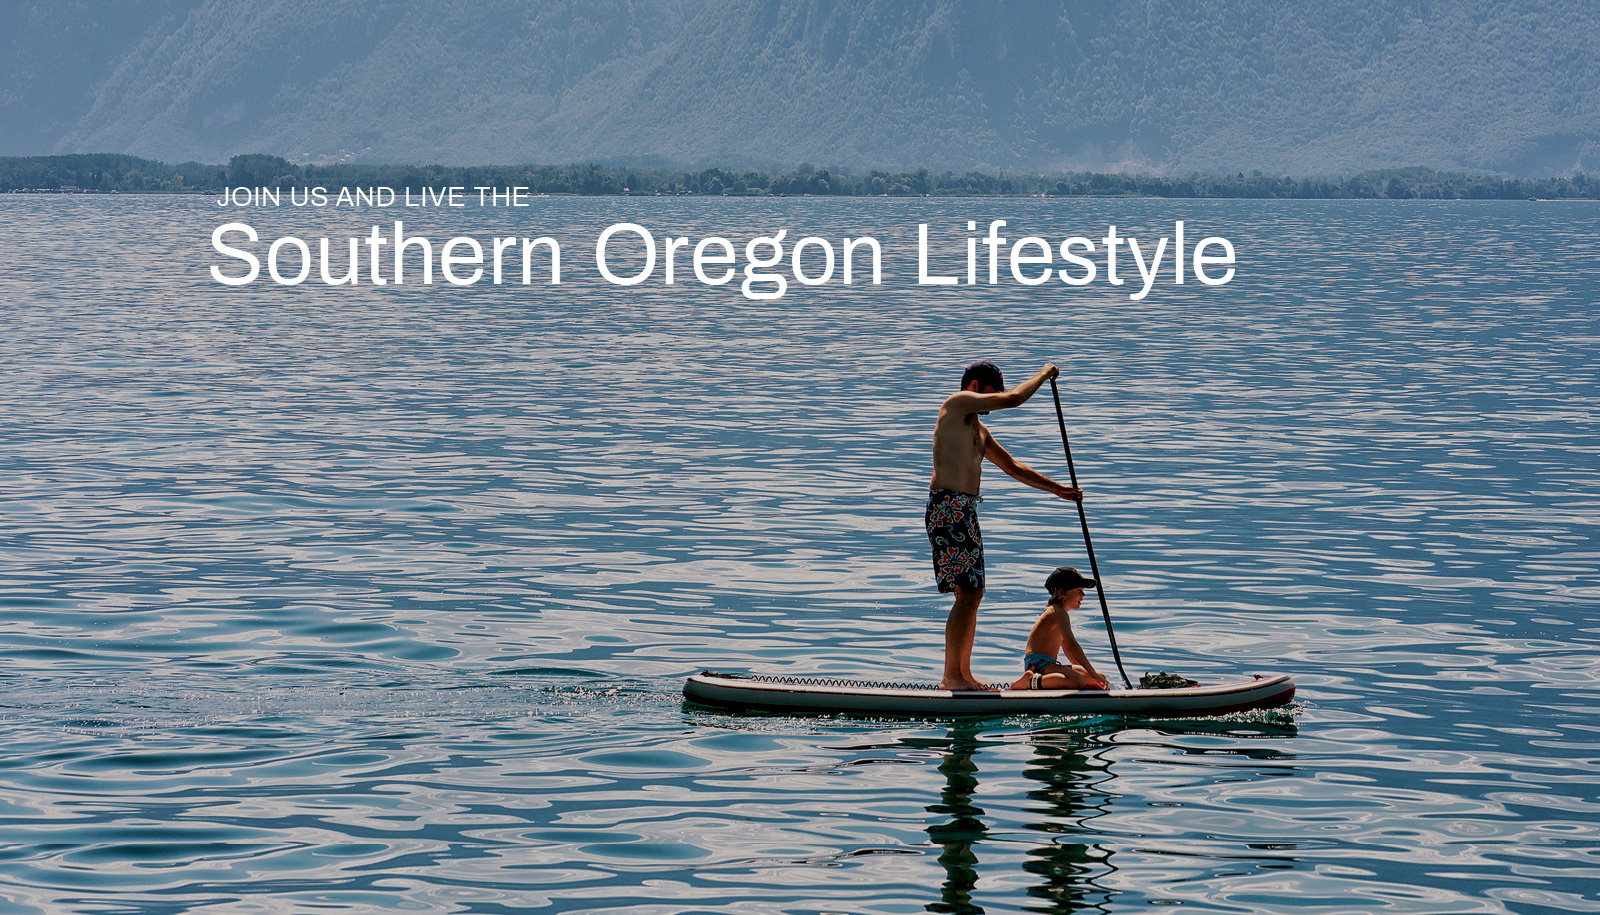 Live The Southern Oregon Lifestyle